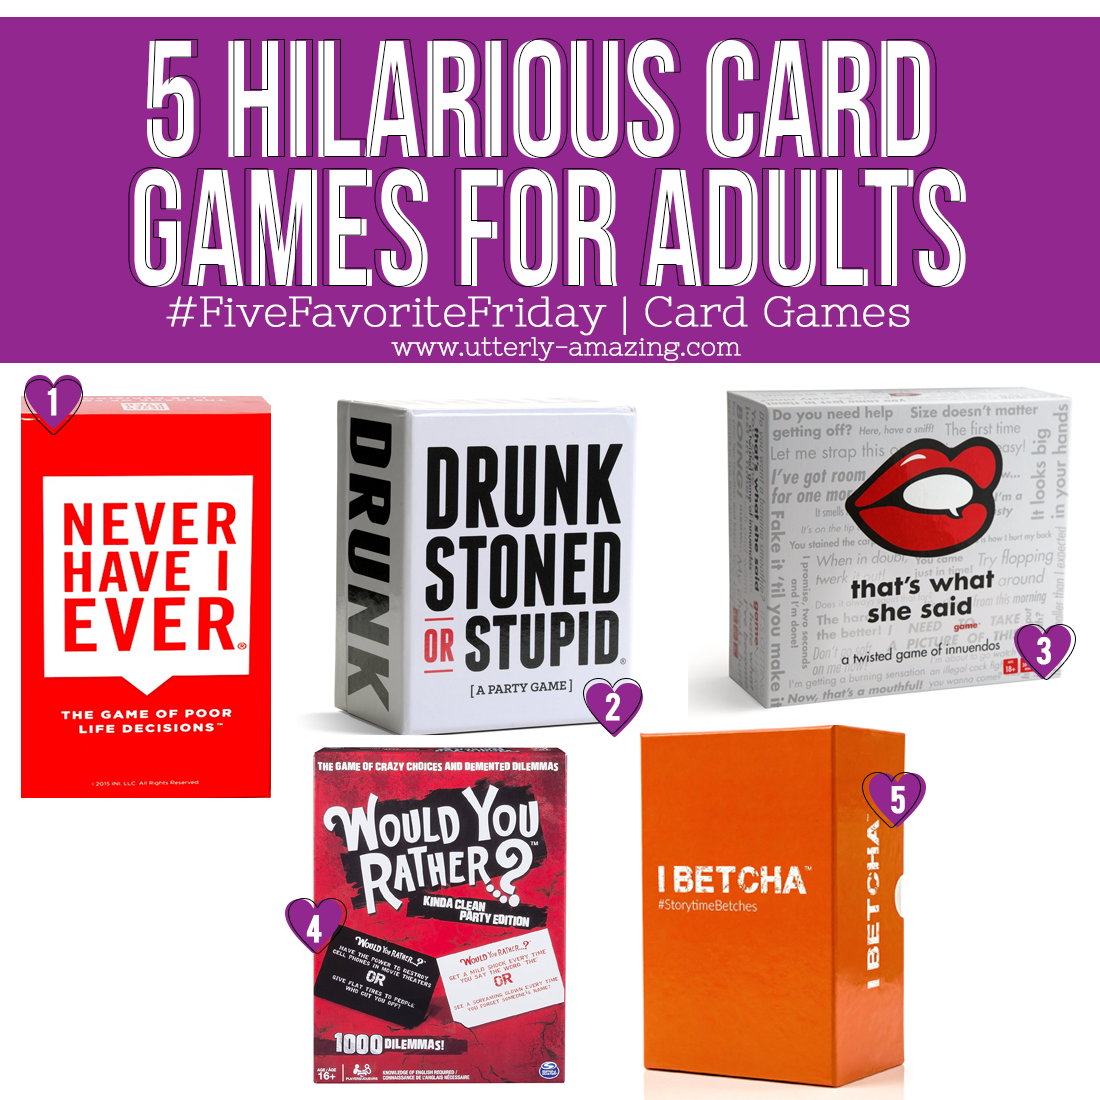 5 Hilarious Card Games For Adults | #FiveFavoriteFriday